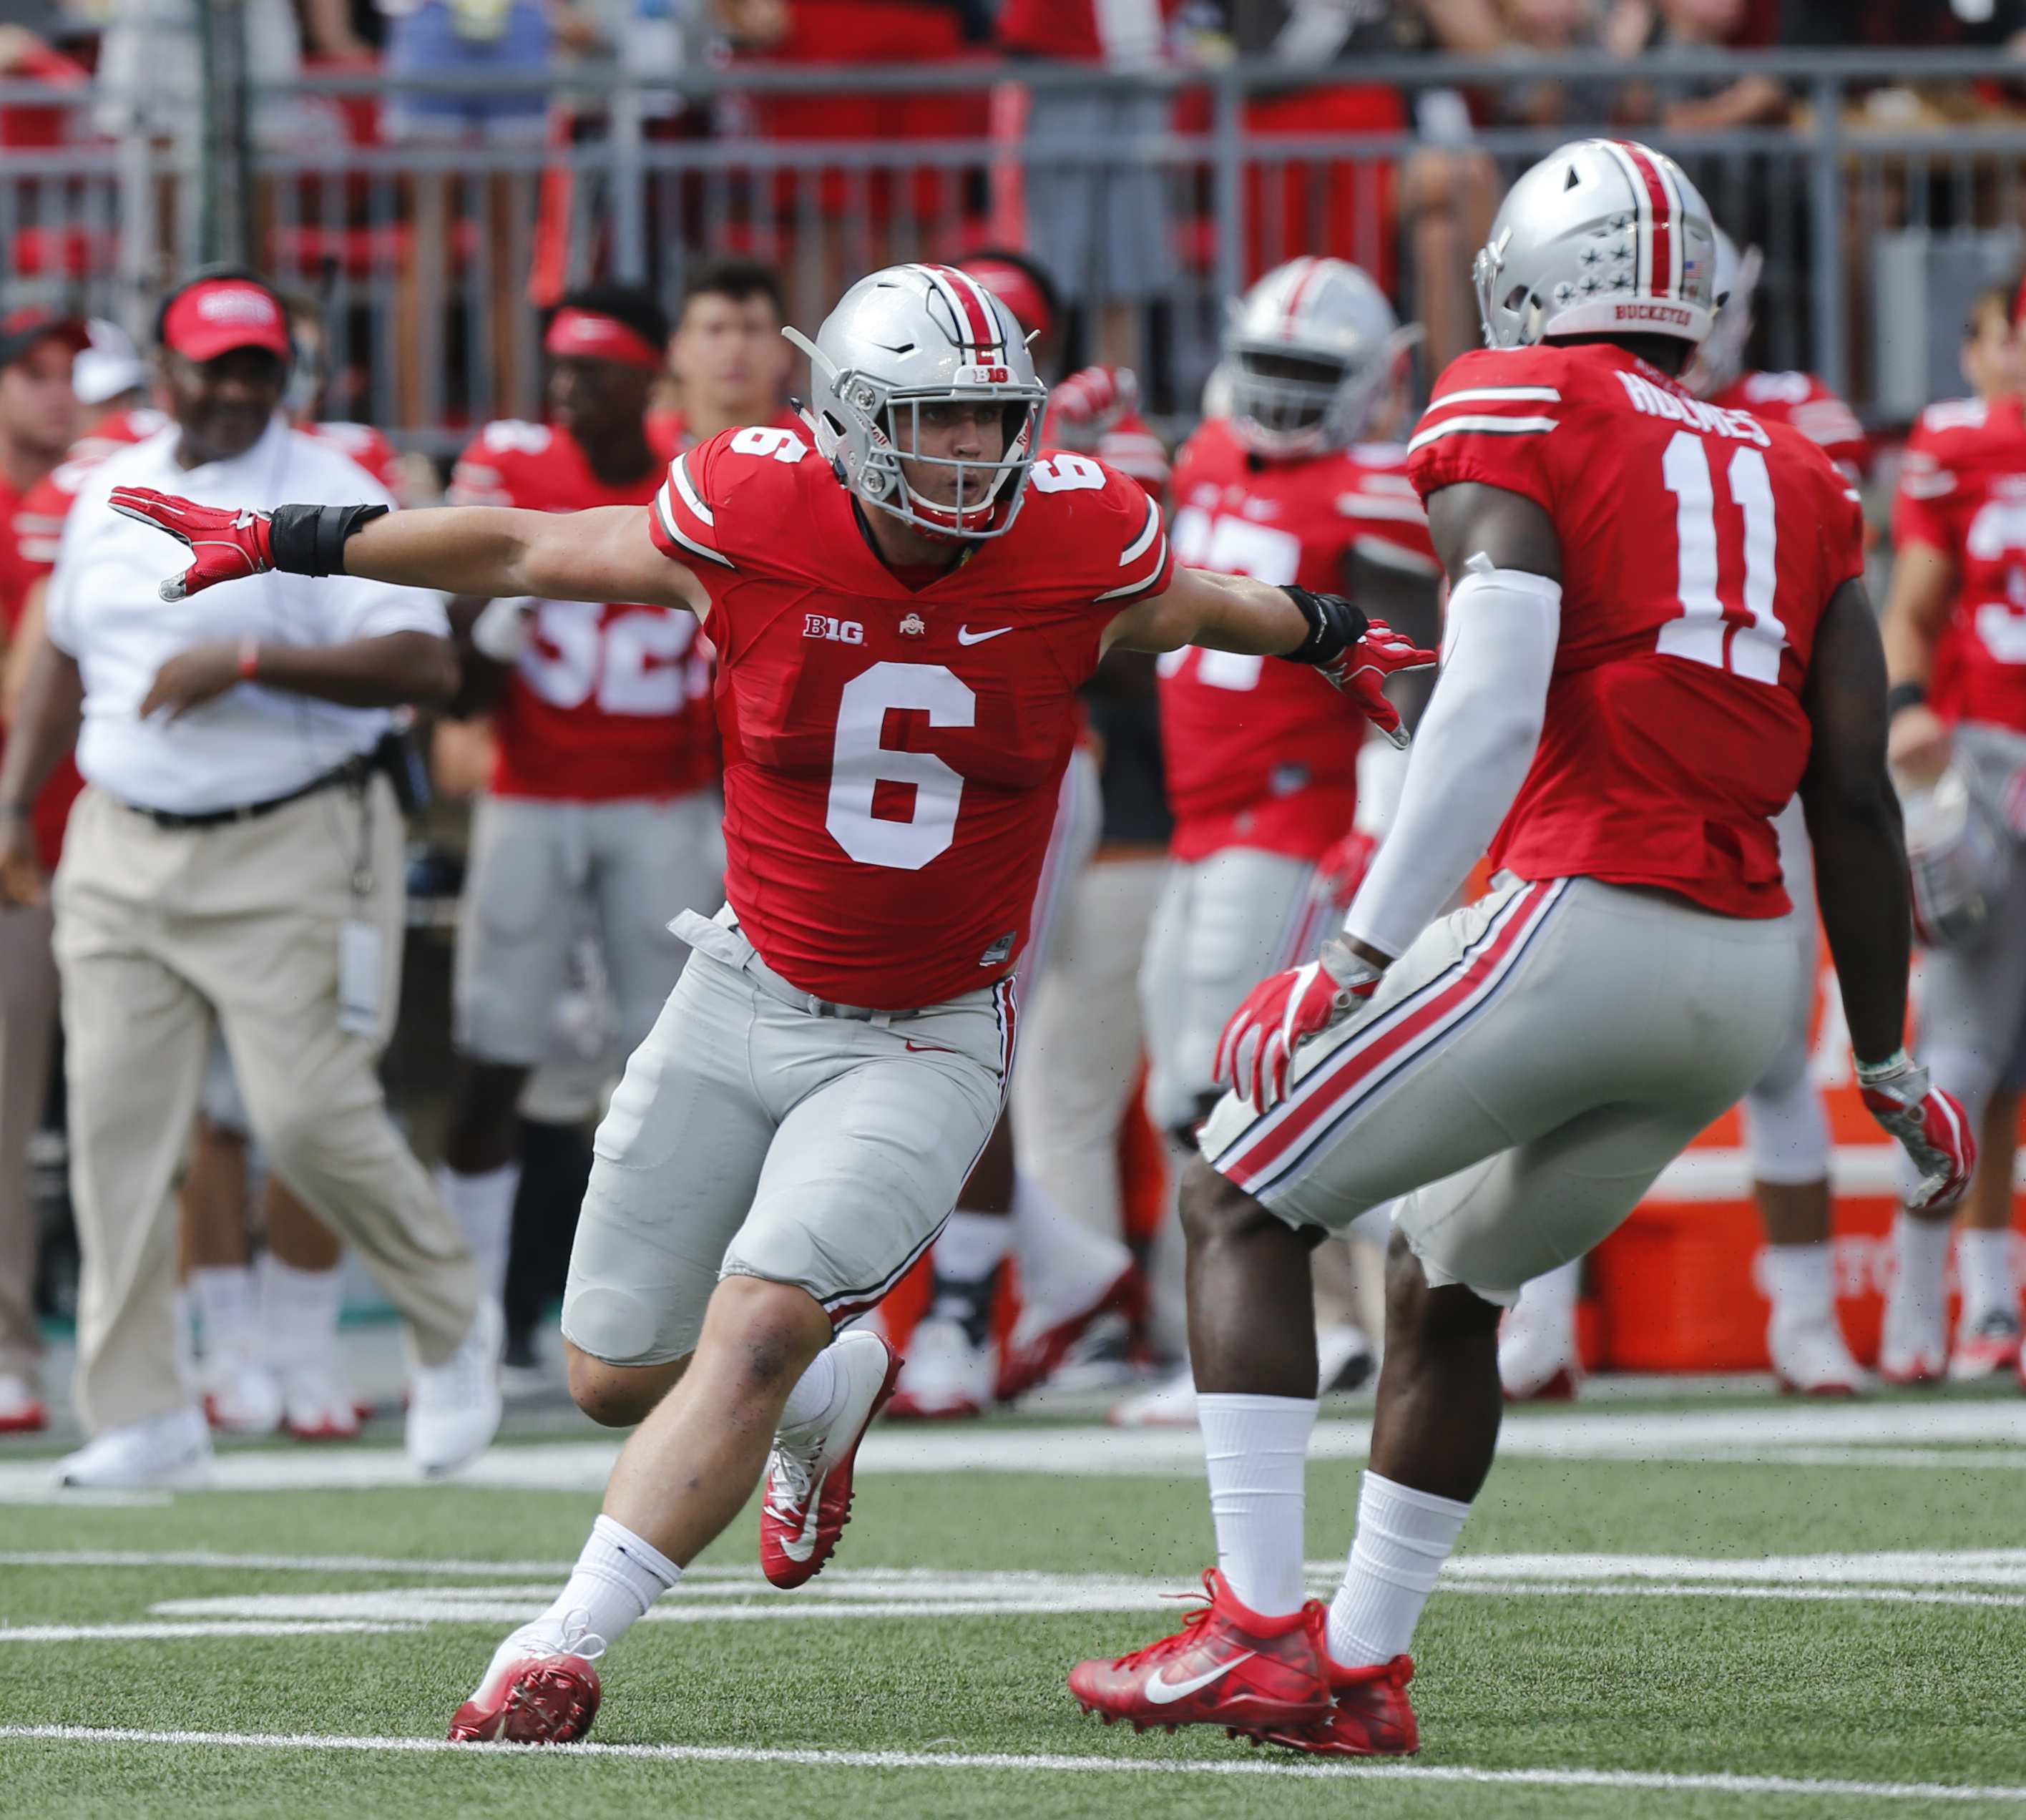 Ohio State defensive end Sam Hubbard, left, and defensive end Jalyn Holmes, celebrate their sack against Tulsa quarterback Dane Evans during the first half of an NCAA college football game, Saturday, Sept. 10, 2016, in Columbus, Ohio. (AP Photo/Jay LaPret